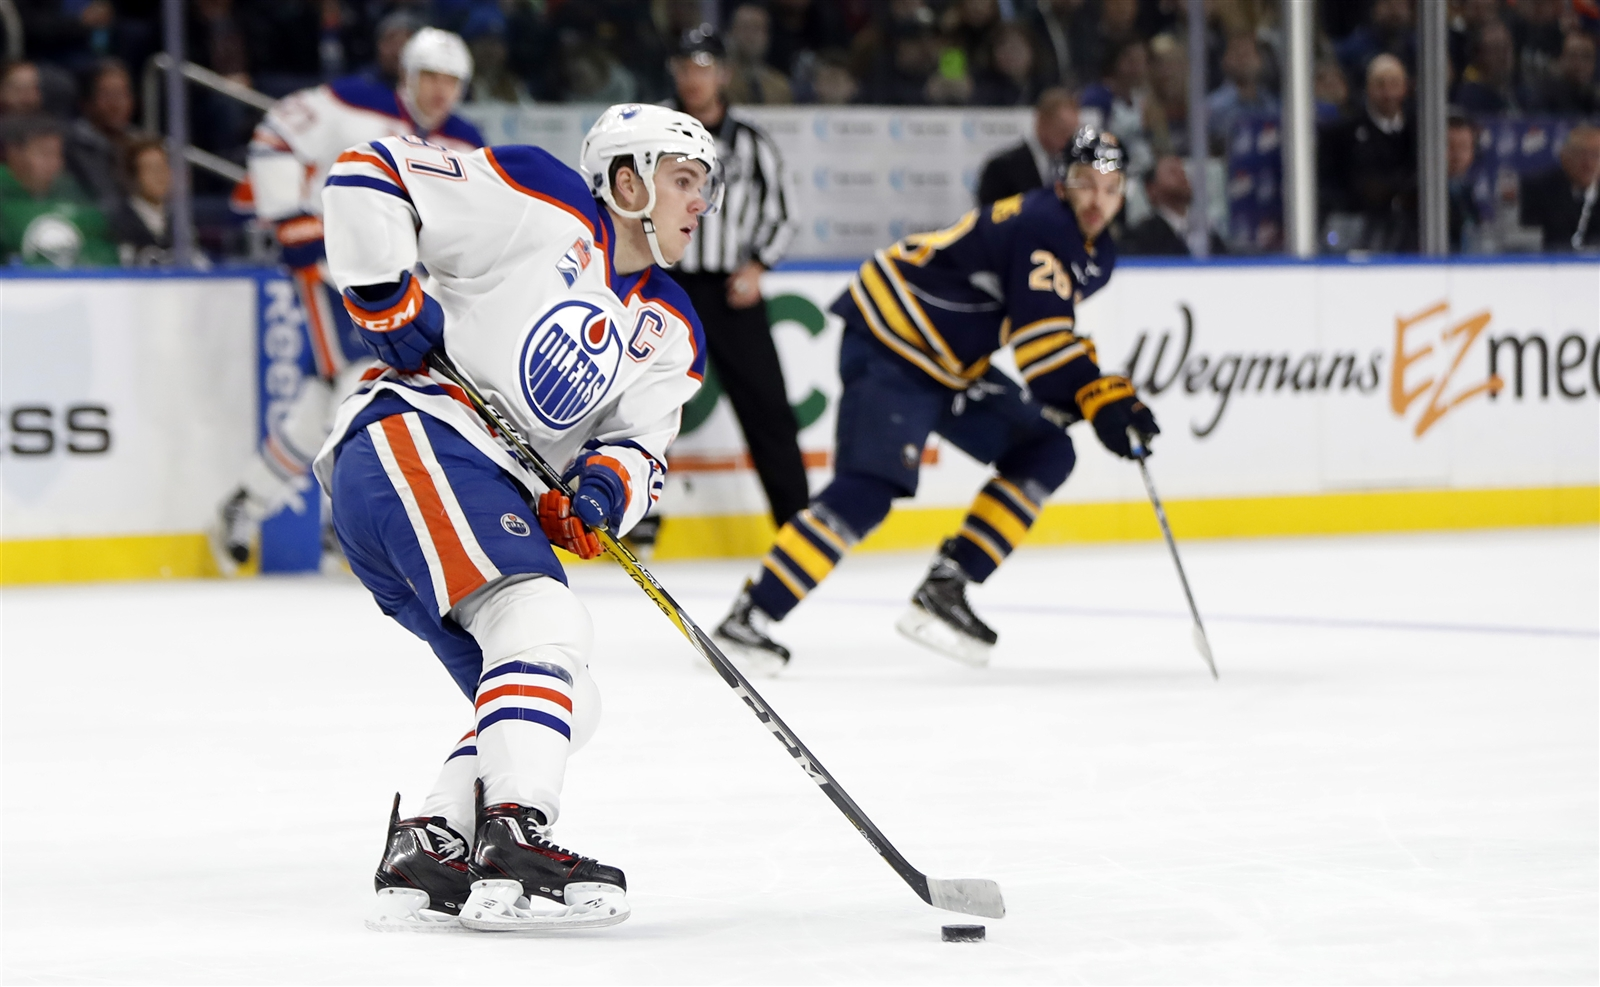 Compared to the game before and the game after, Connor McDavid had a quiet night here Tuesday (Harry Scull Jr./Buffalo News).